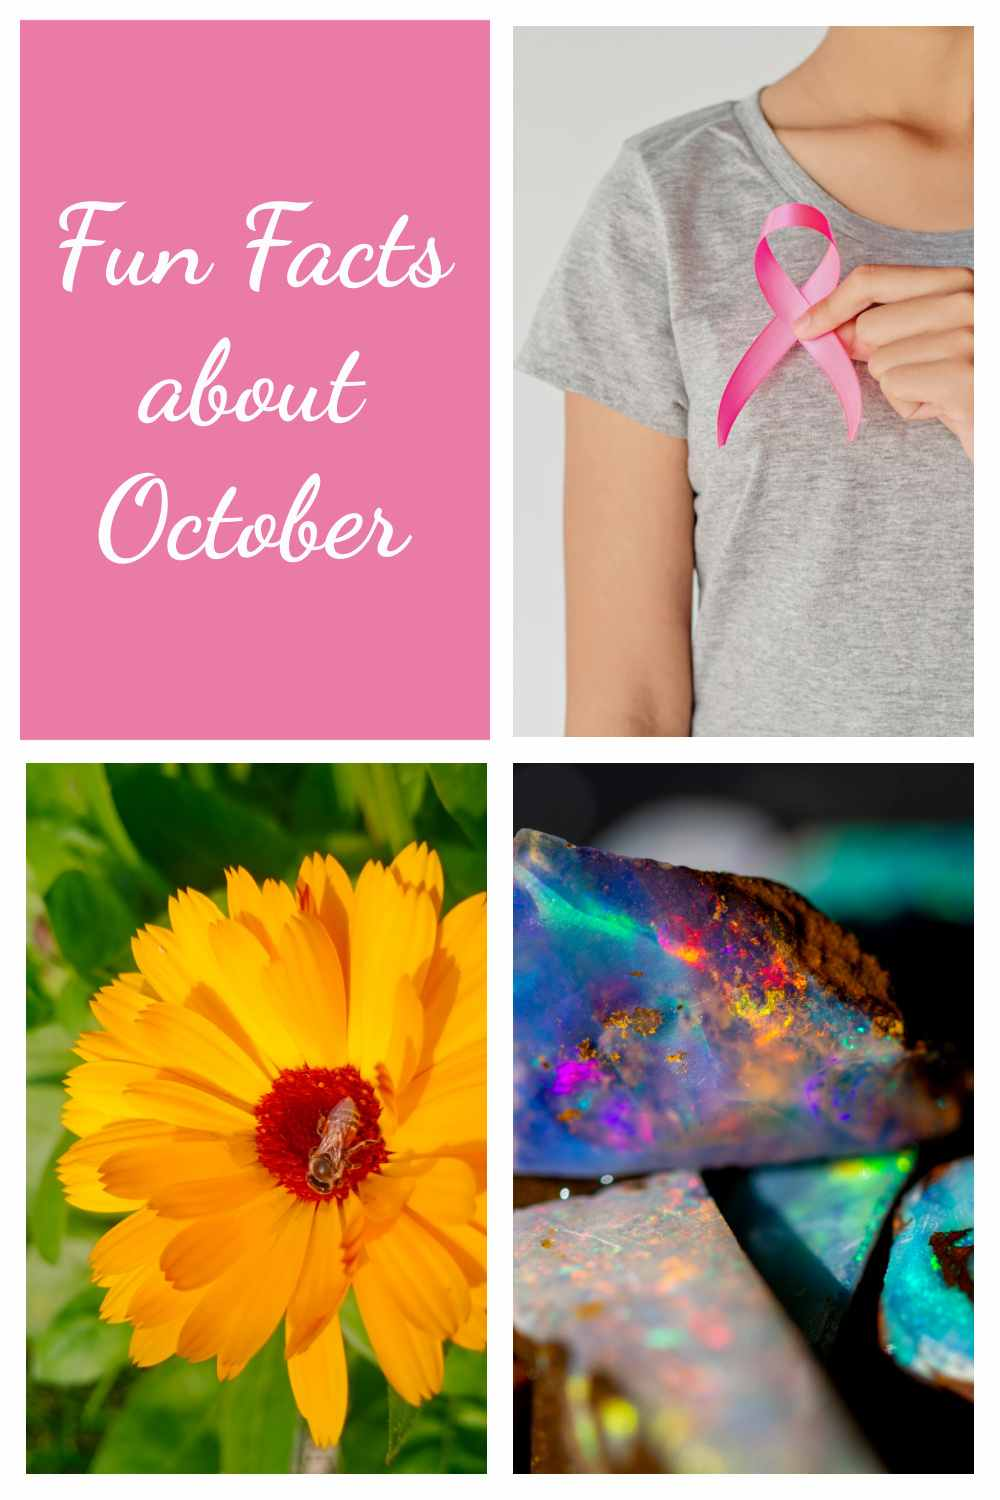 Breast cancer awareness ribbon, calendula, and opal in a collage with words Fun Facts about October.